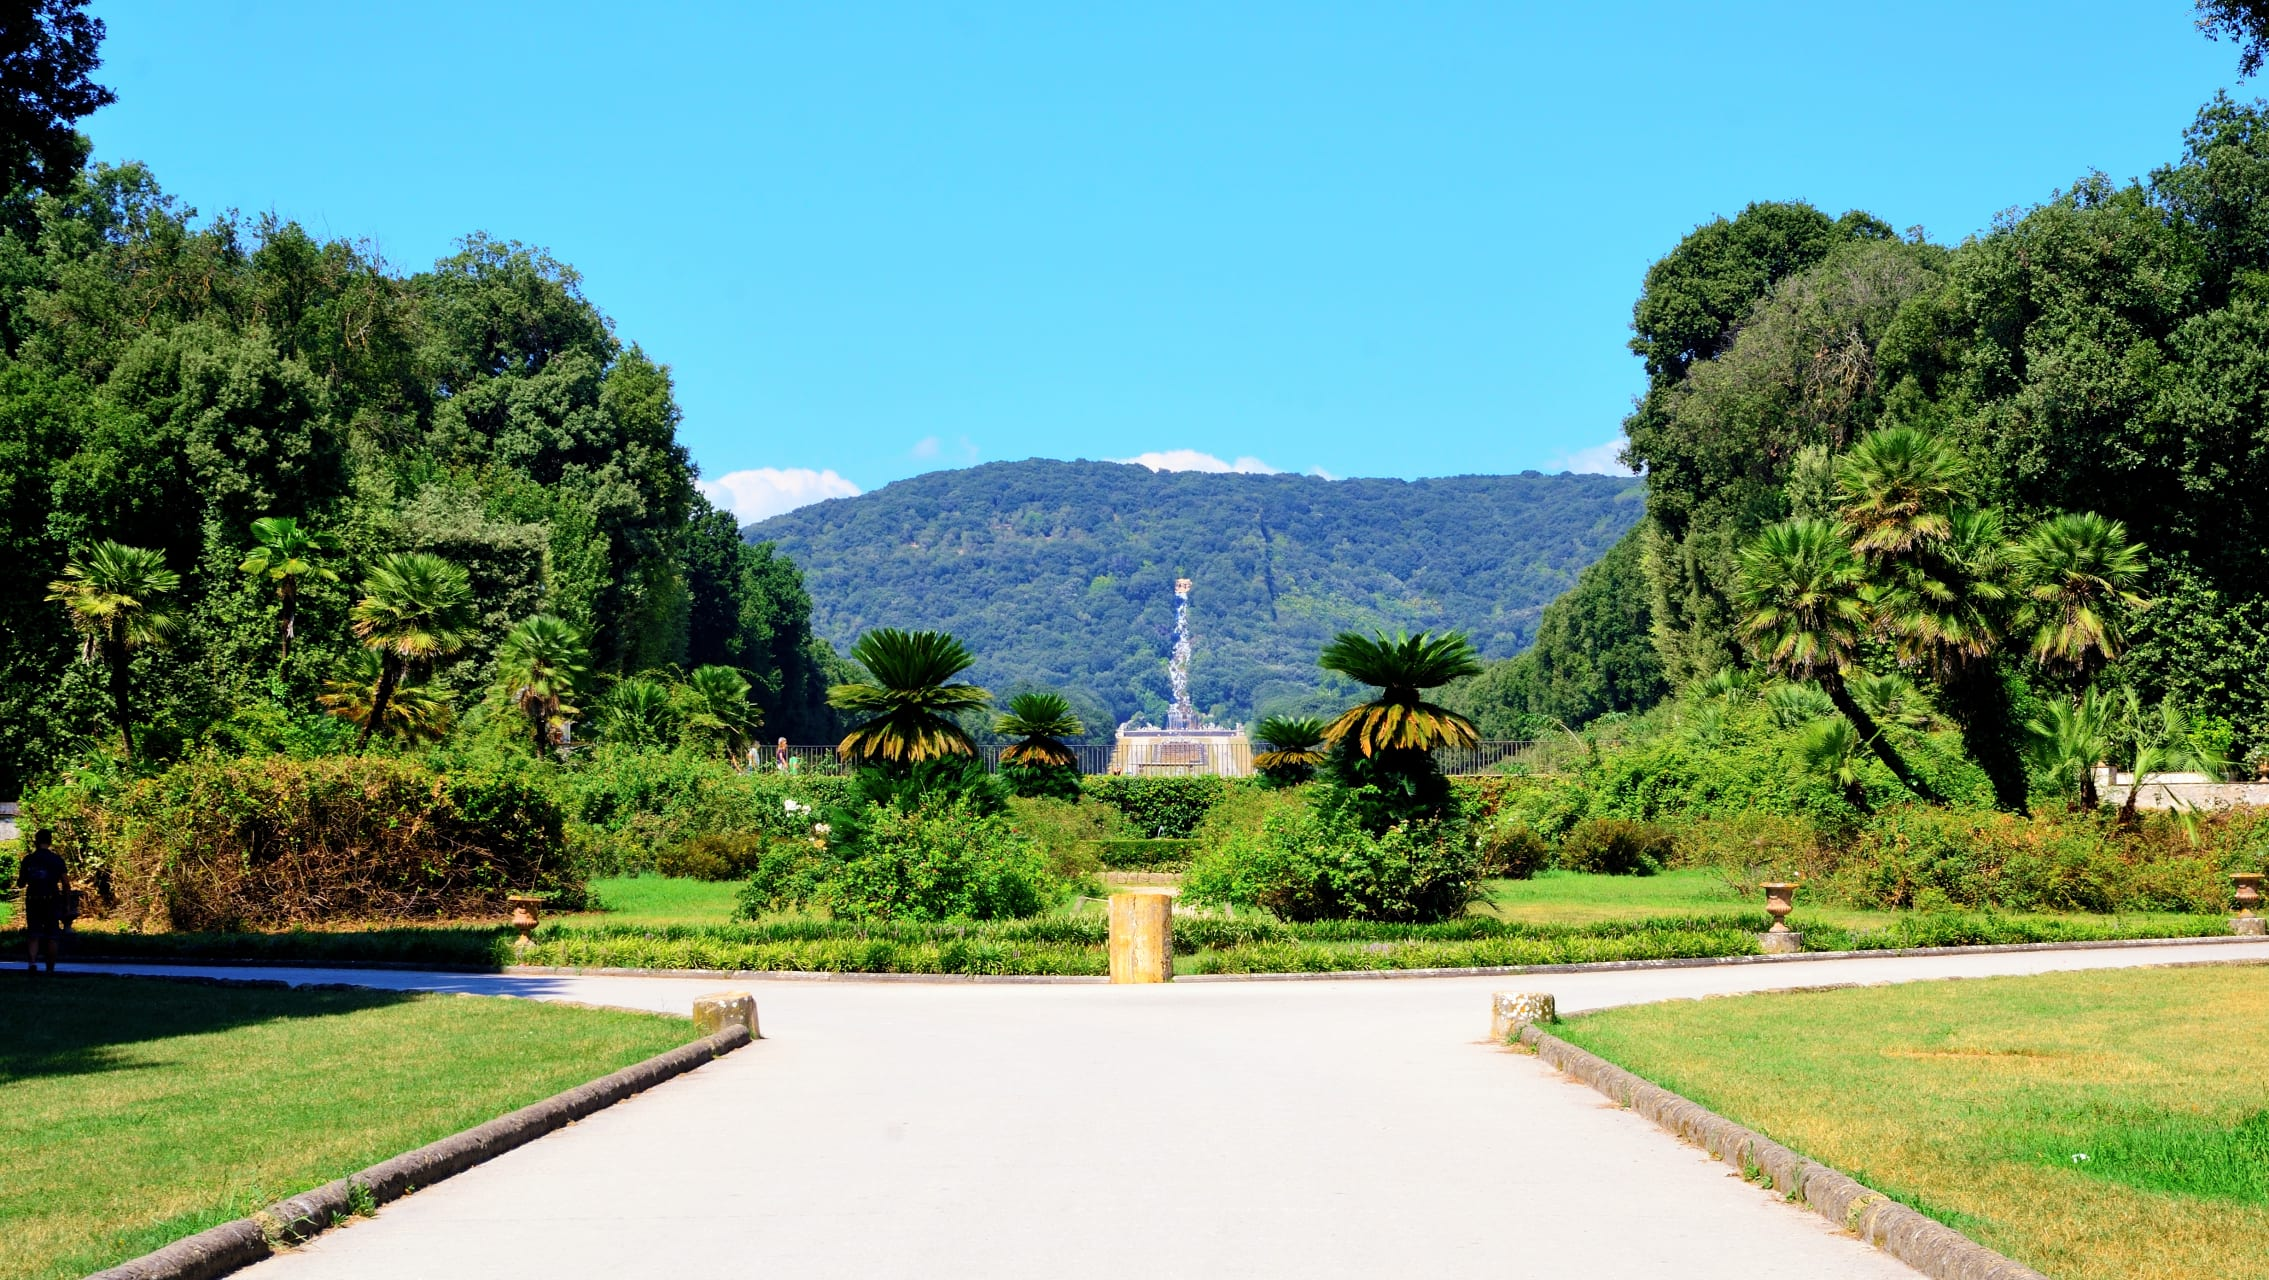 Caserta - The English Garden of the Royal Palace of Caserta